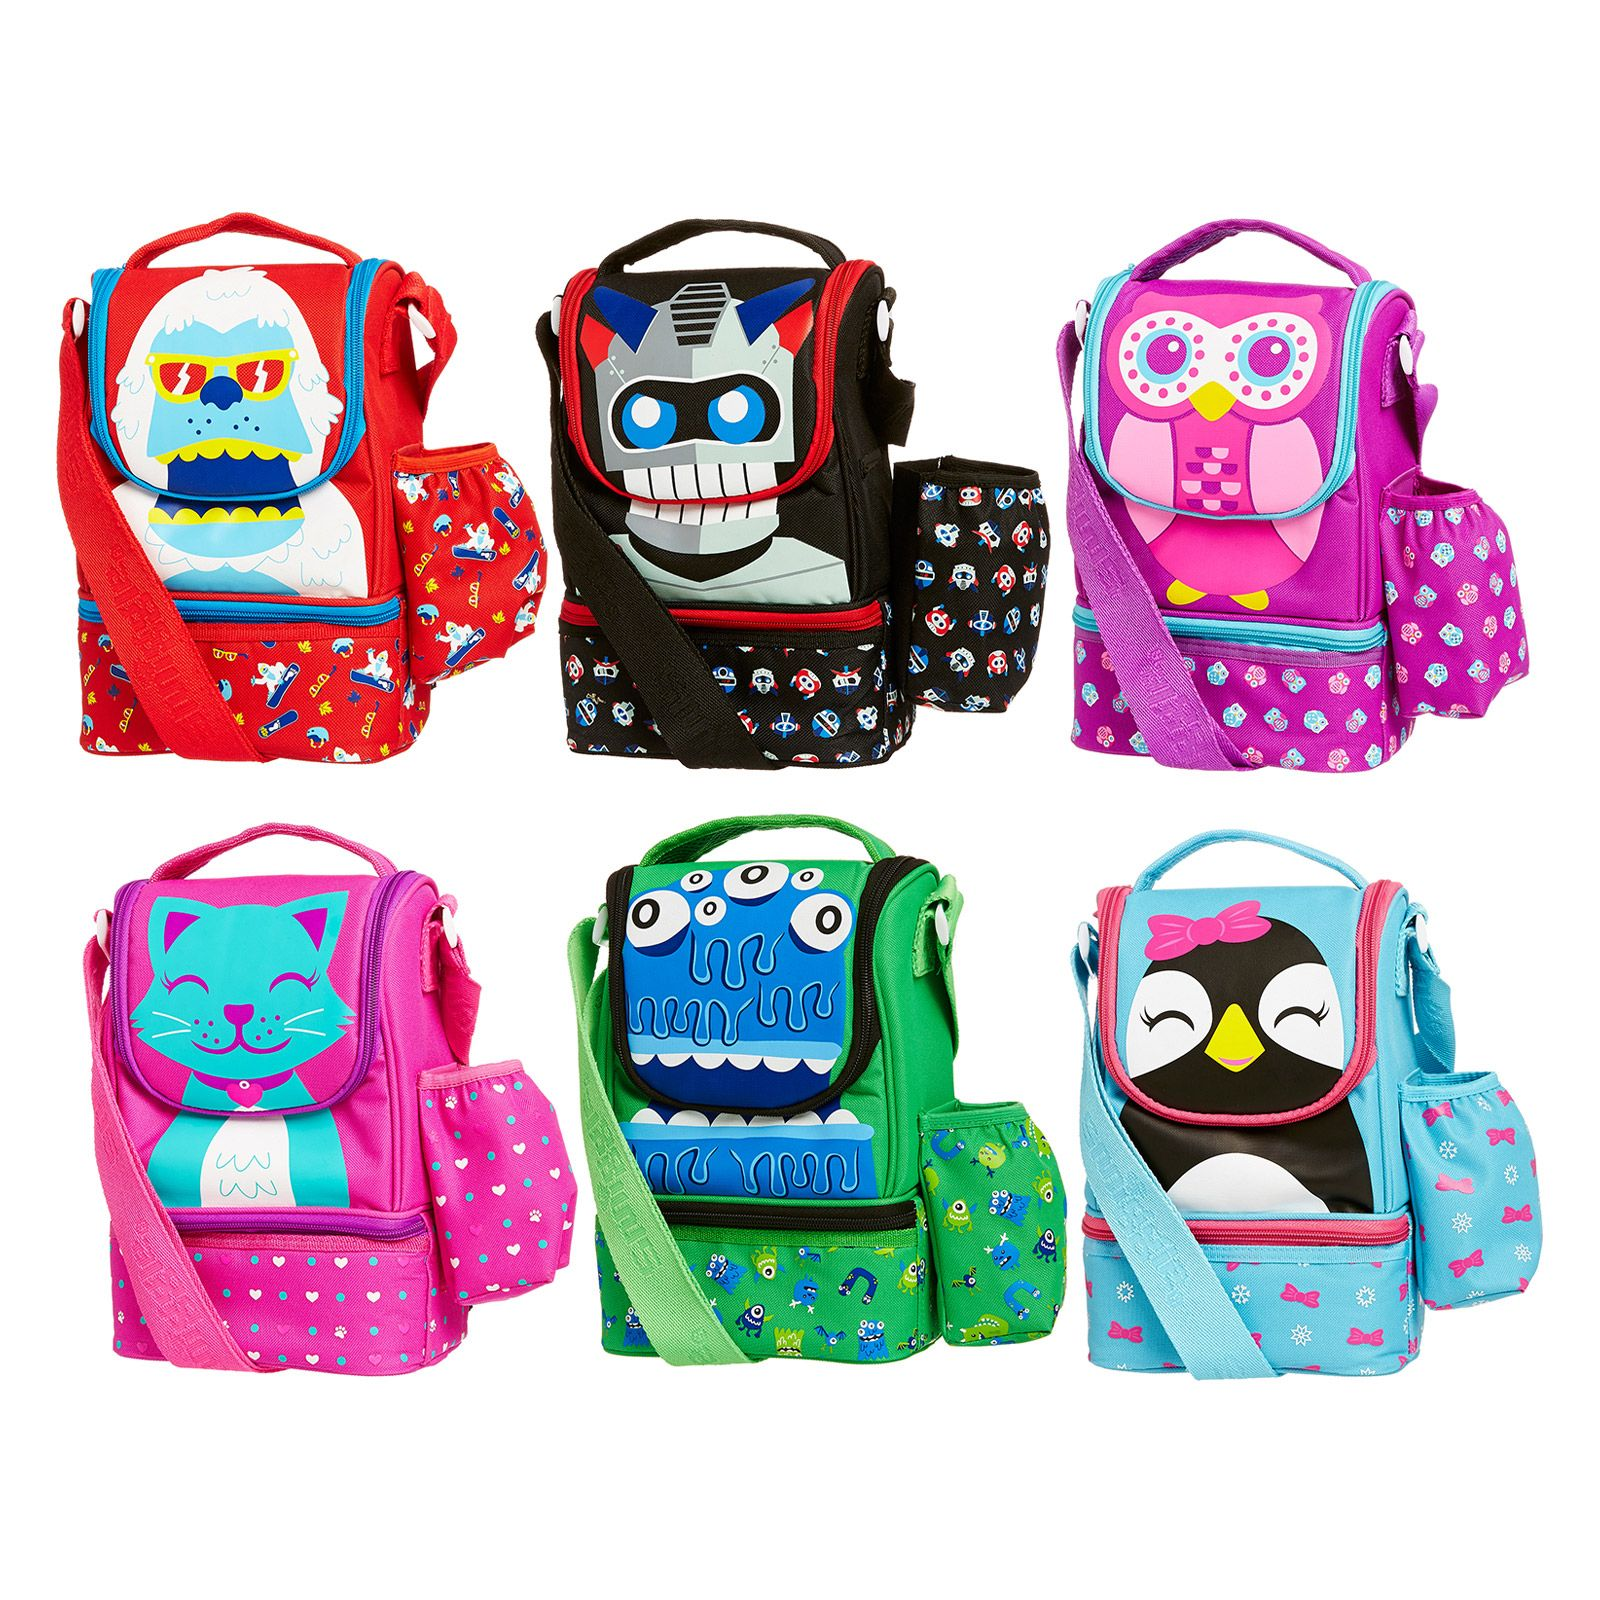 image for strap character lunchbox from smiggle cute products